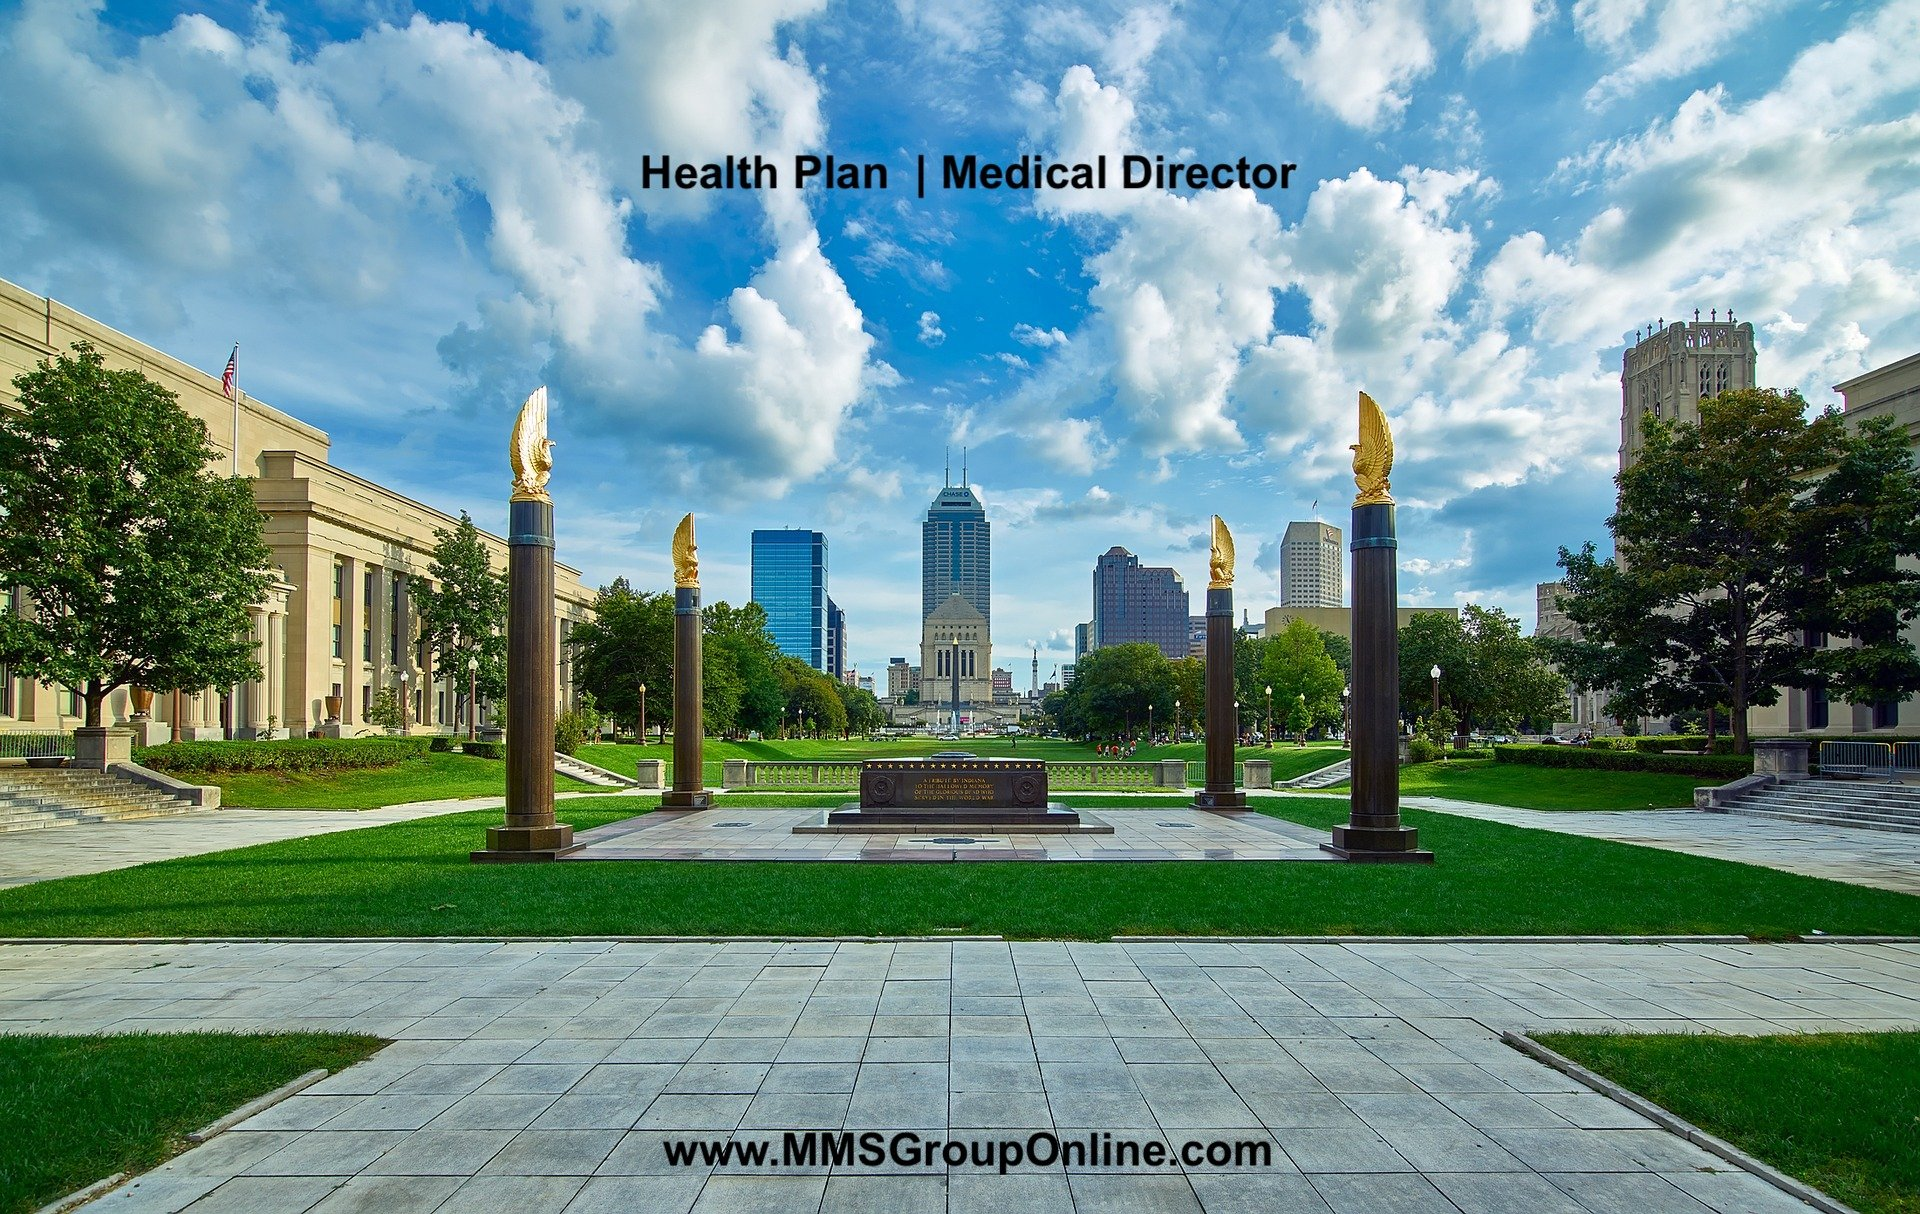 Health Plan Medical Director Job in Indianapolis IN